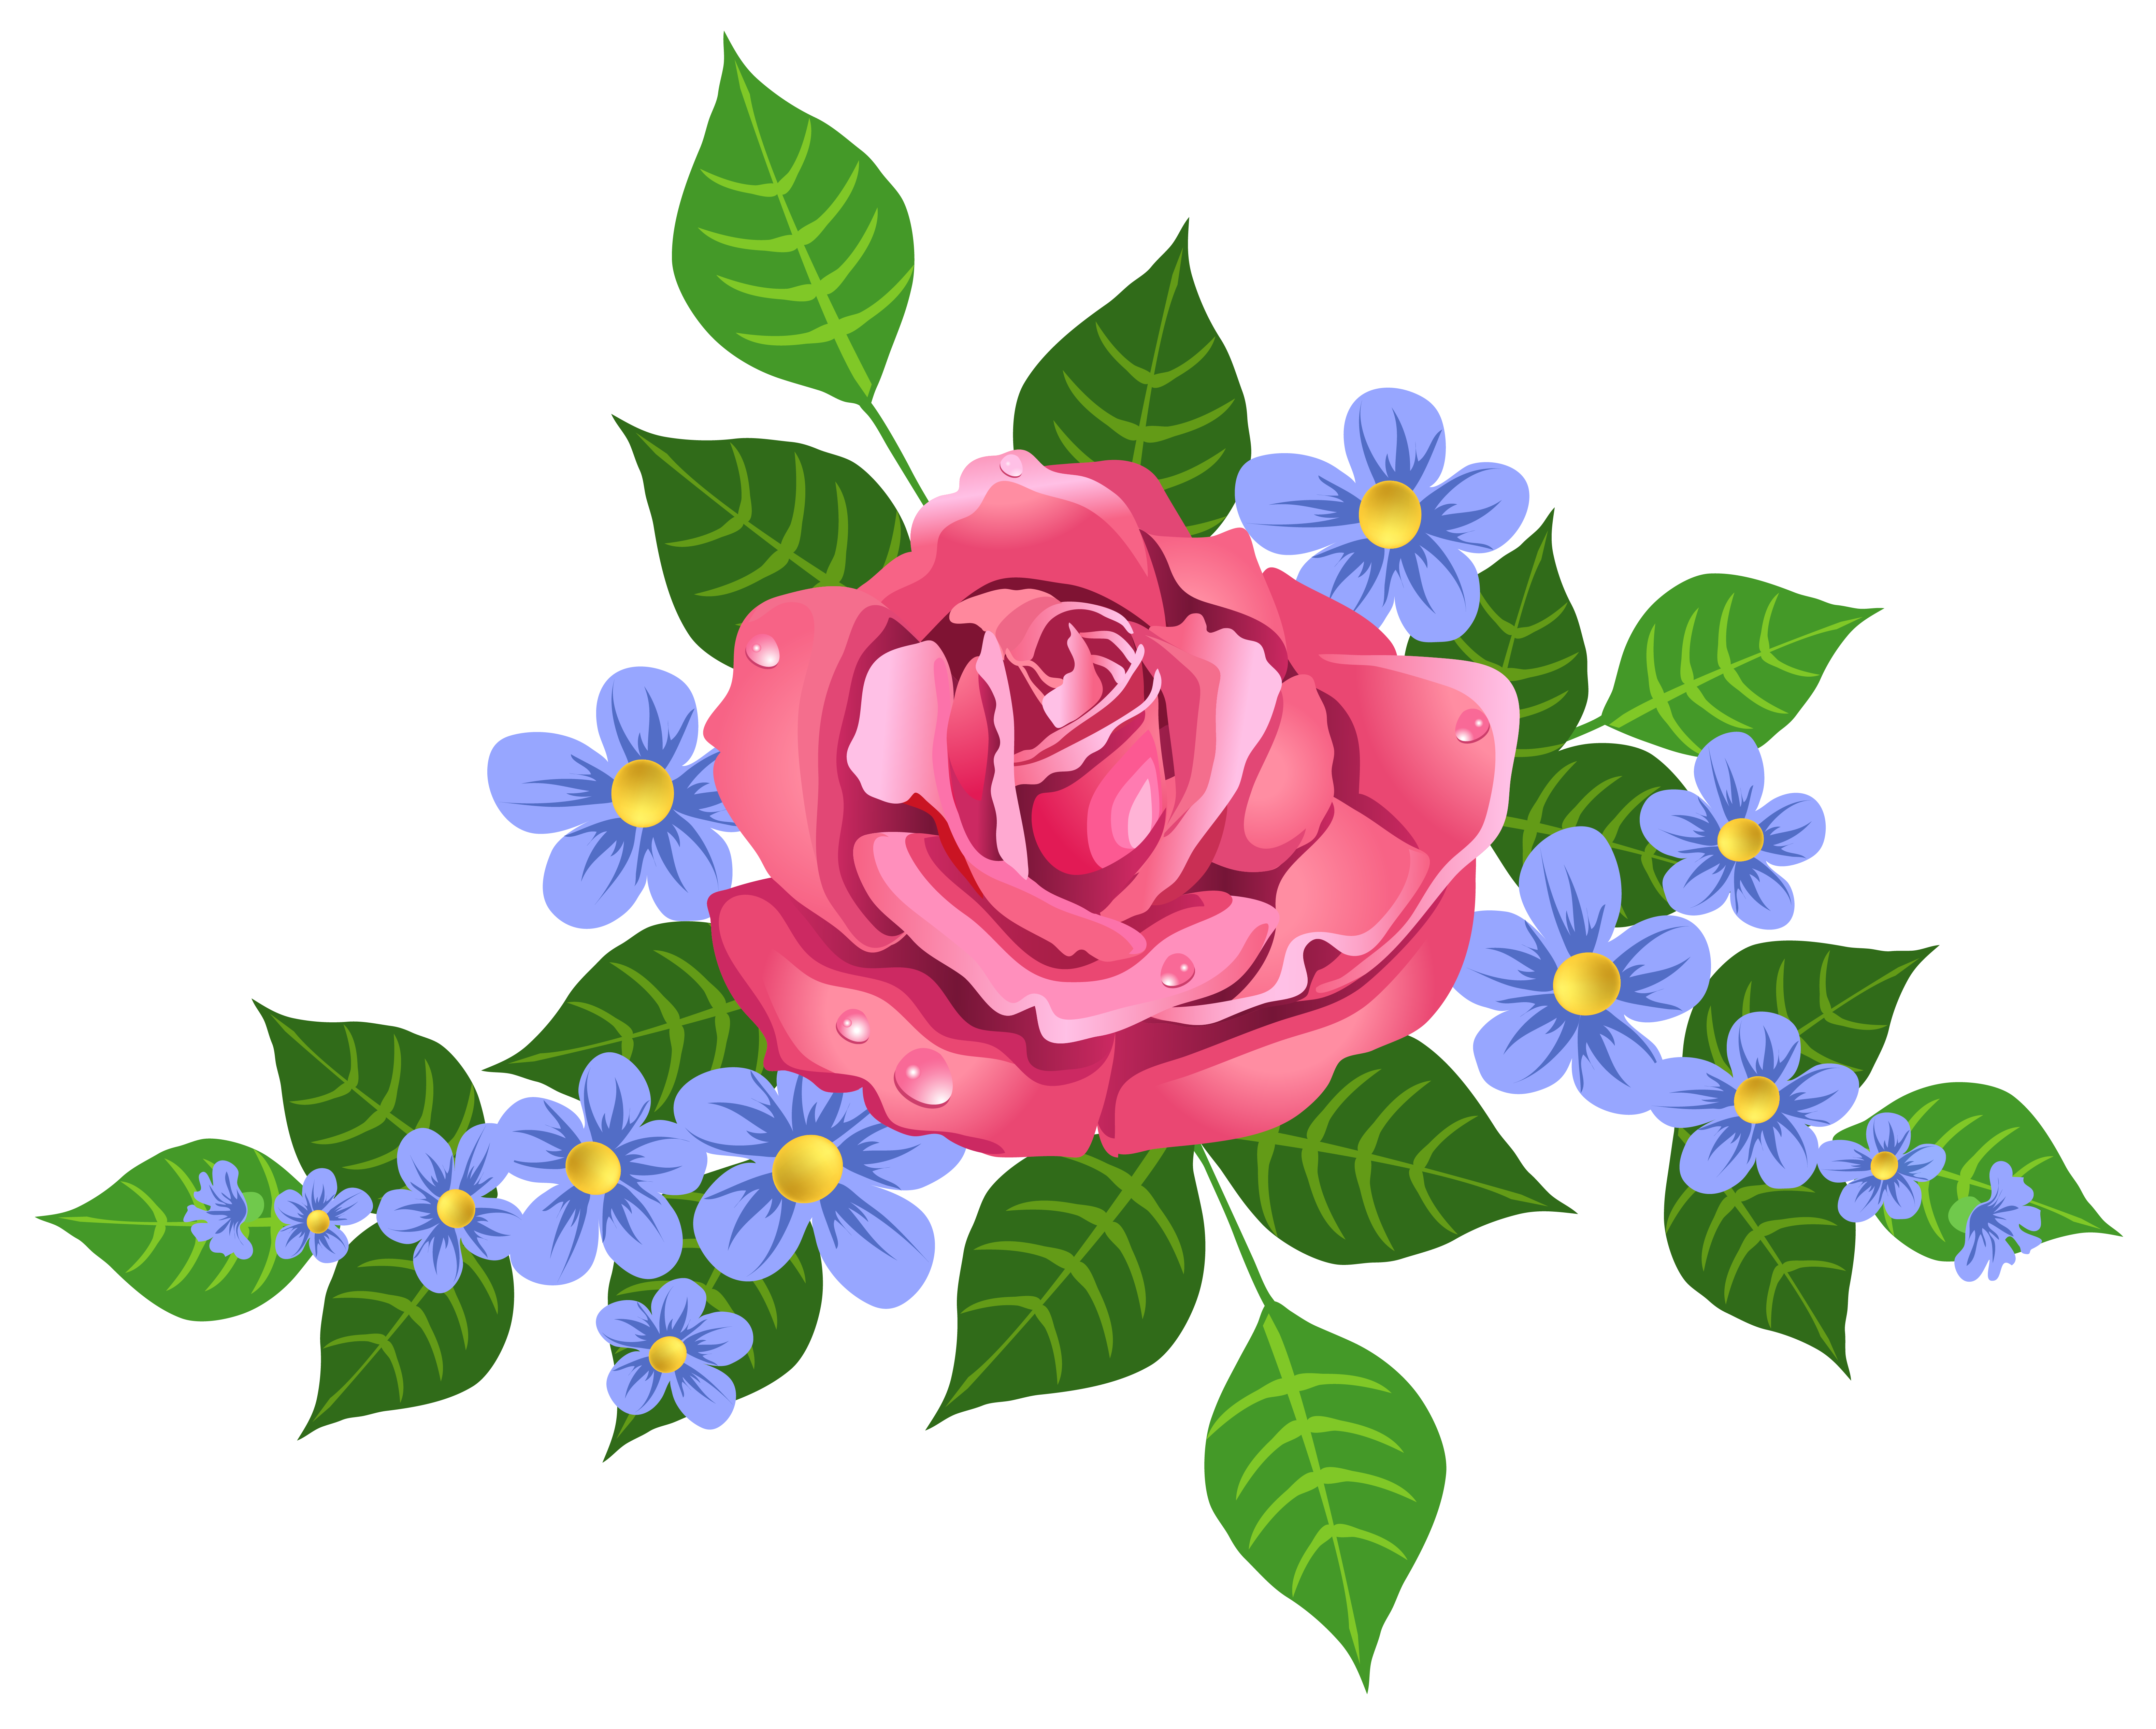 Pink and blue flowers png. Rose decorative element image